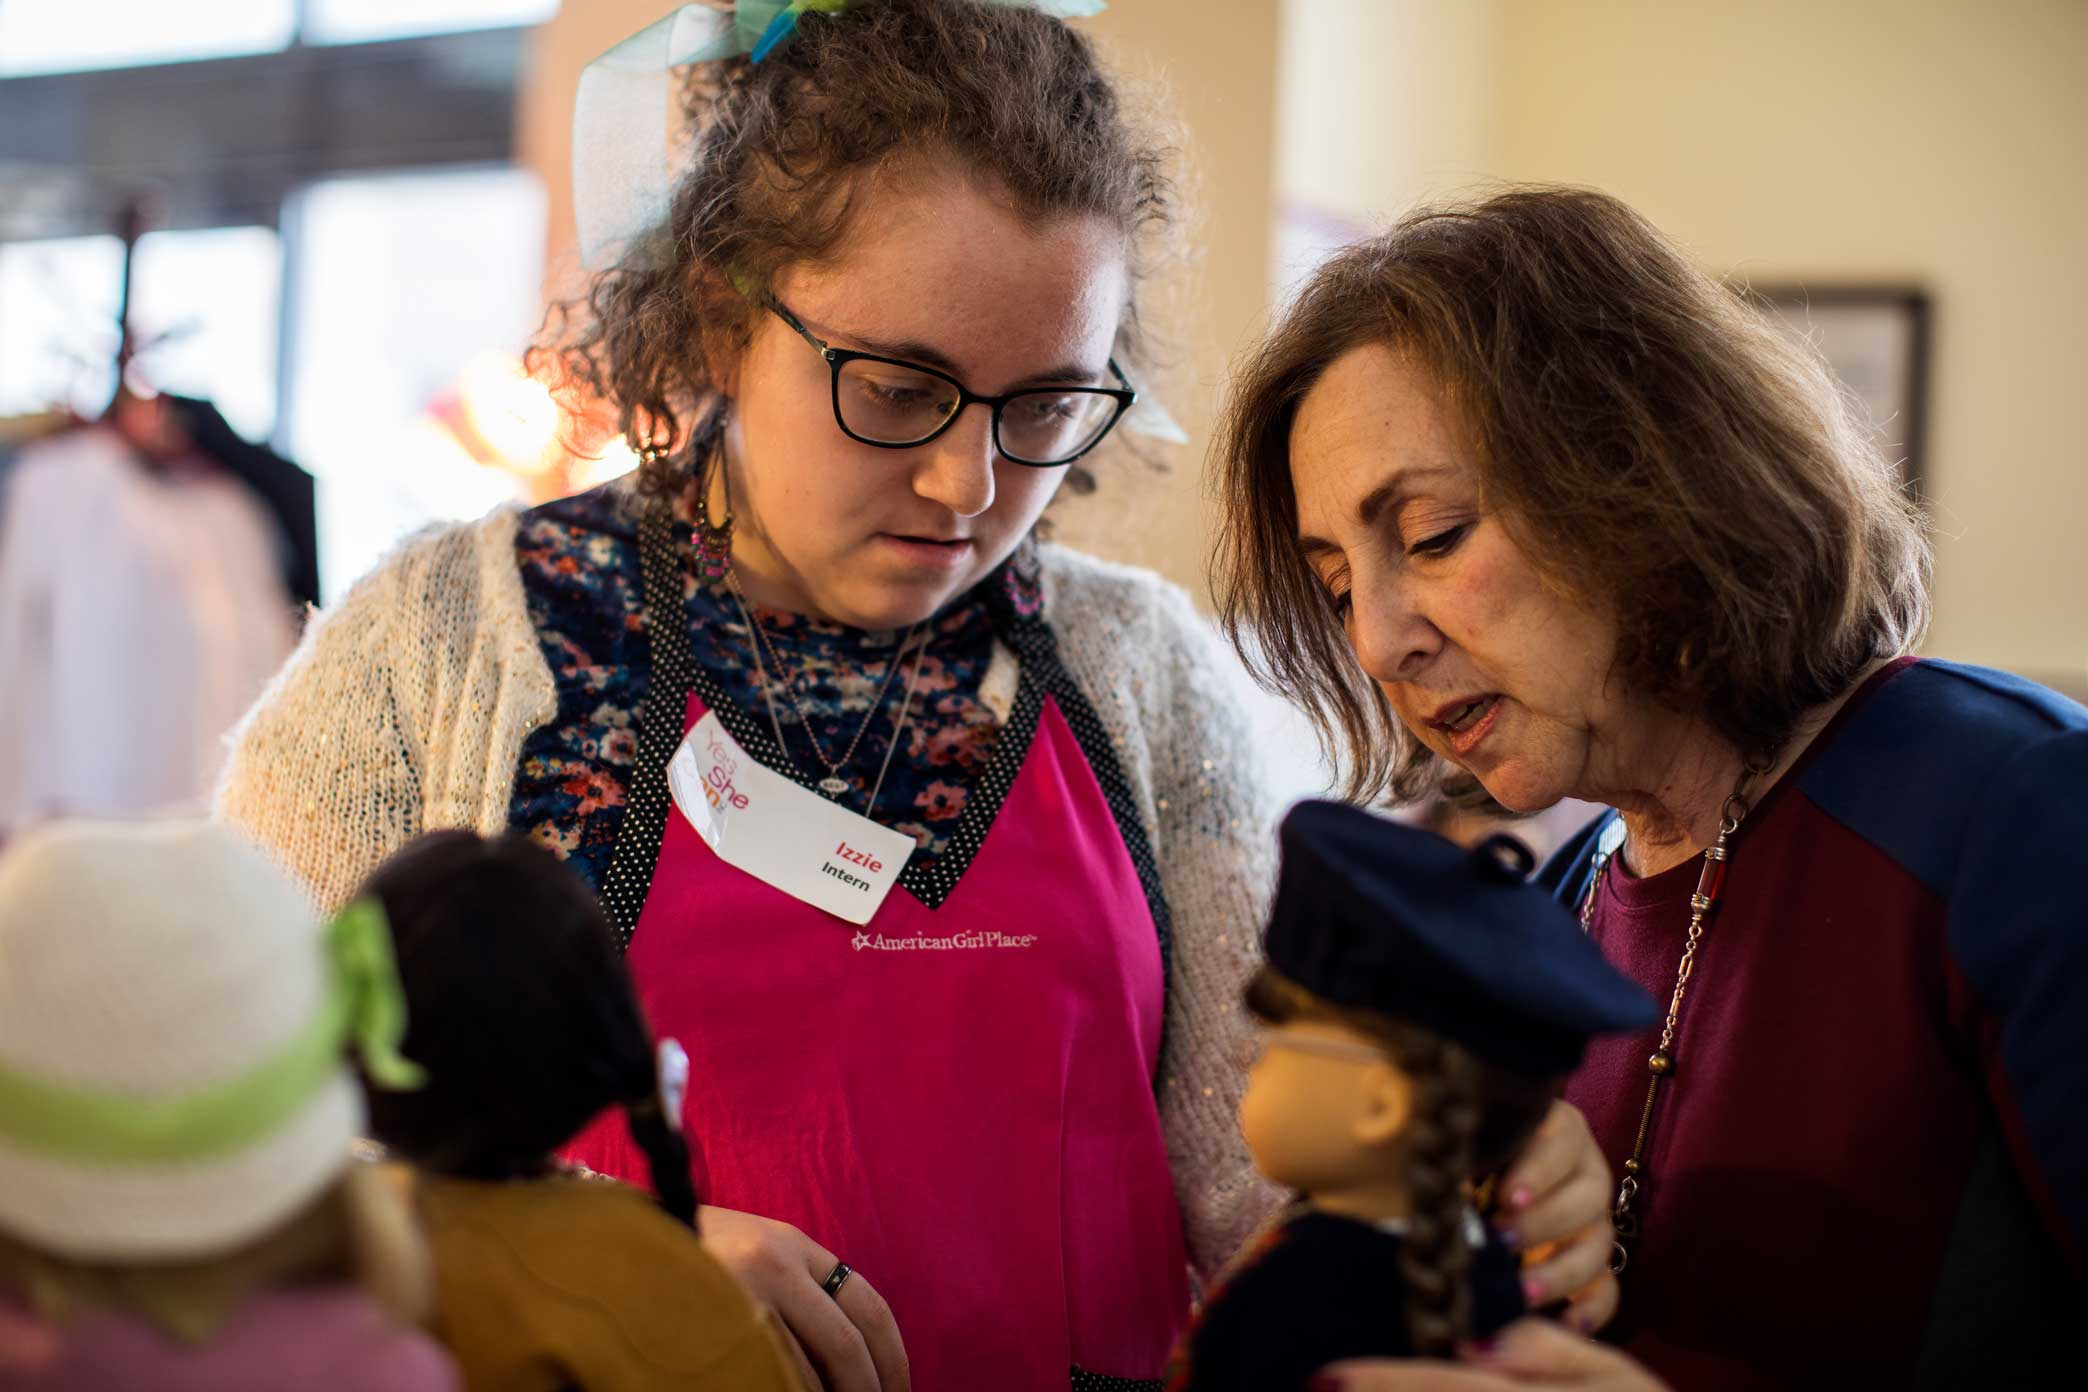 President and Executive Director of Yes She Can Inc, Majorie Madfis work with her daughter Isabelle at her resale boutique for American Girl Dolls store Girl A Gain in White Plains, New York.